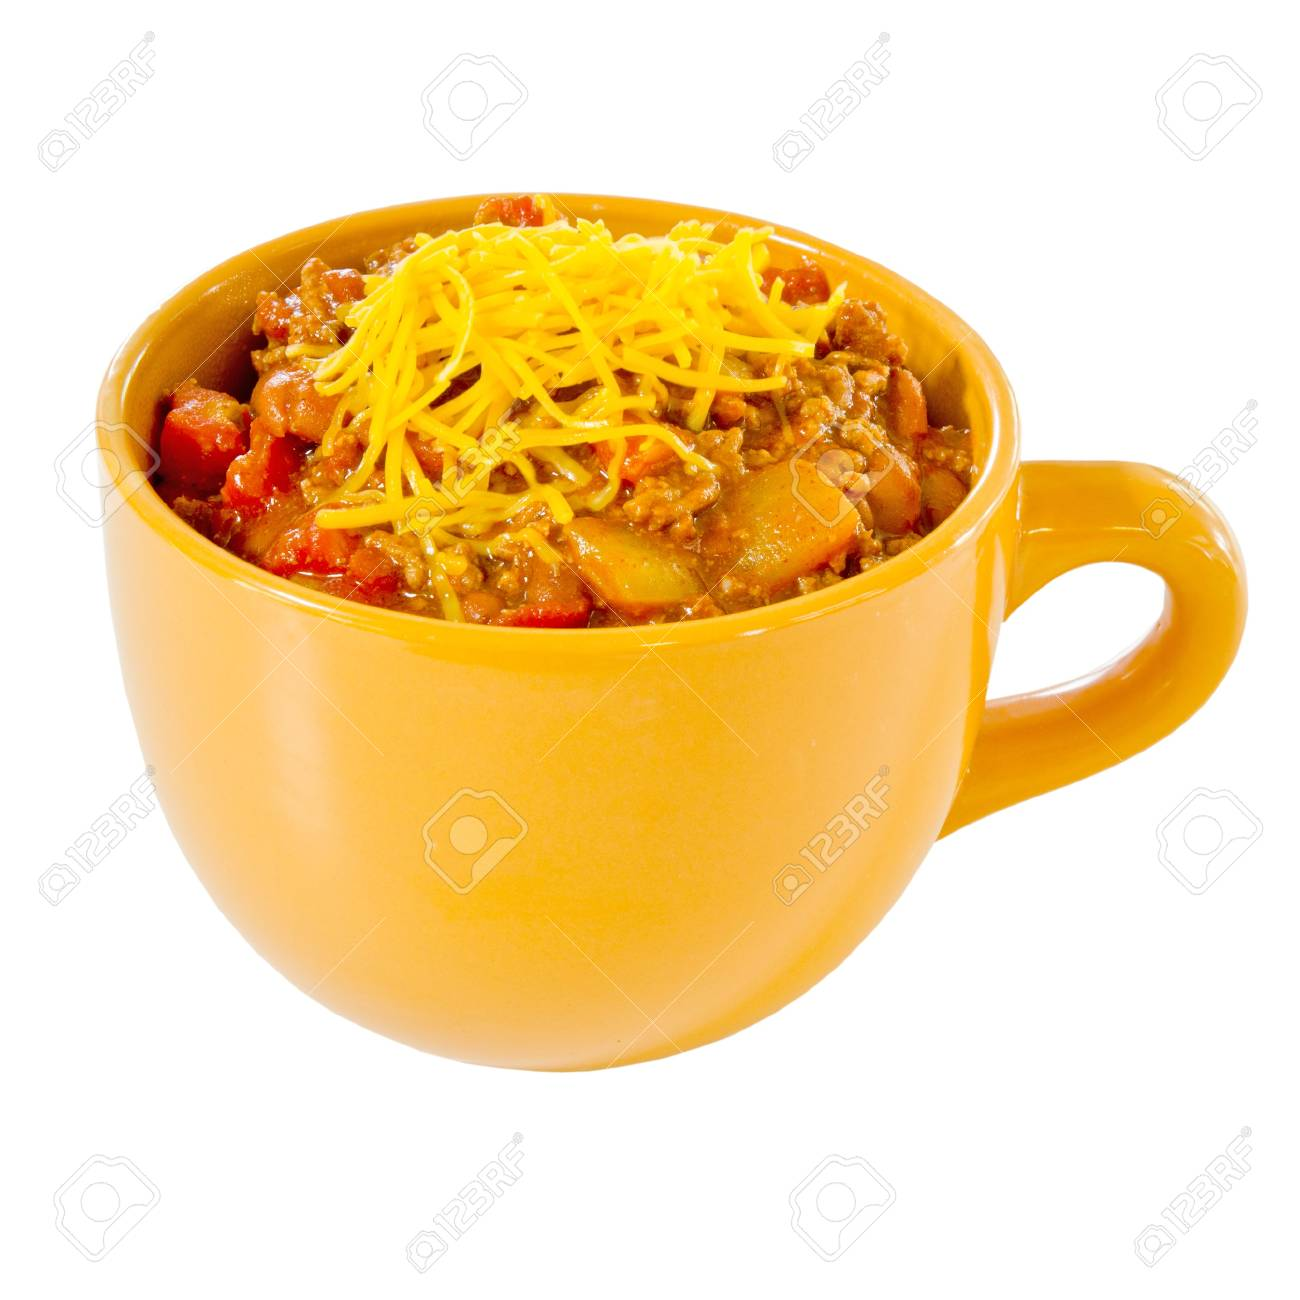 Cup of chili with cheese isolated on white Stock Photo - 11279484